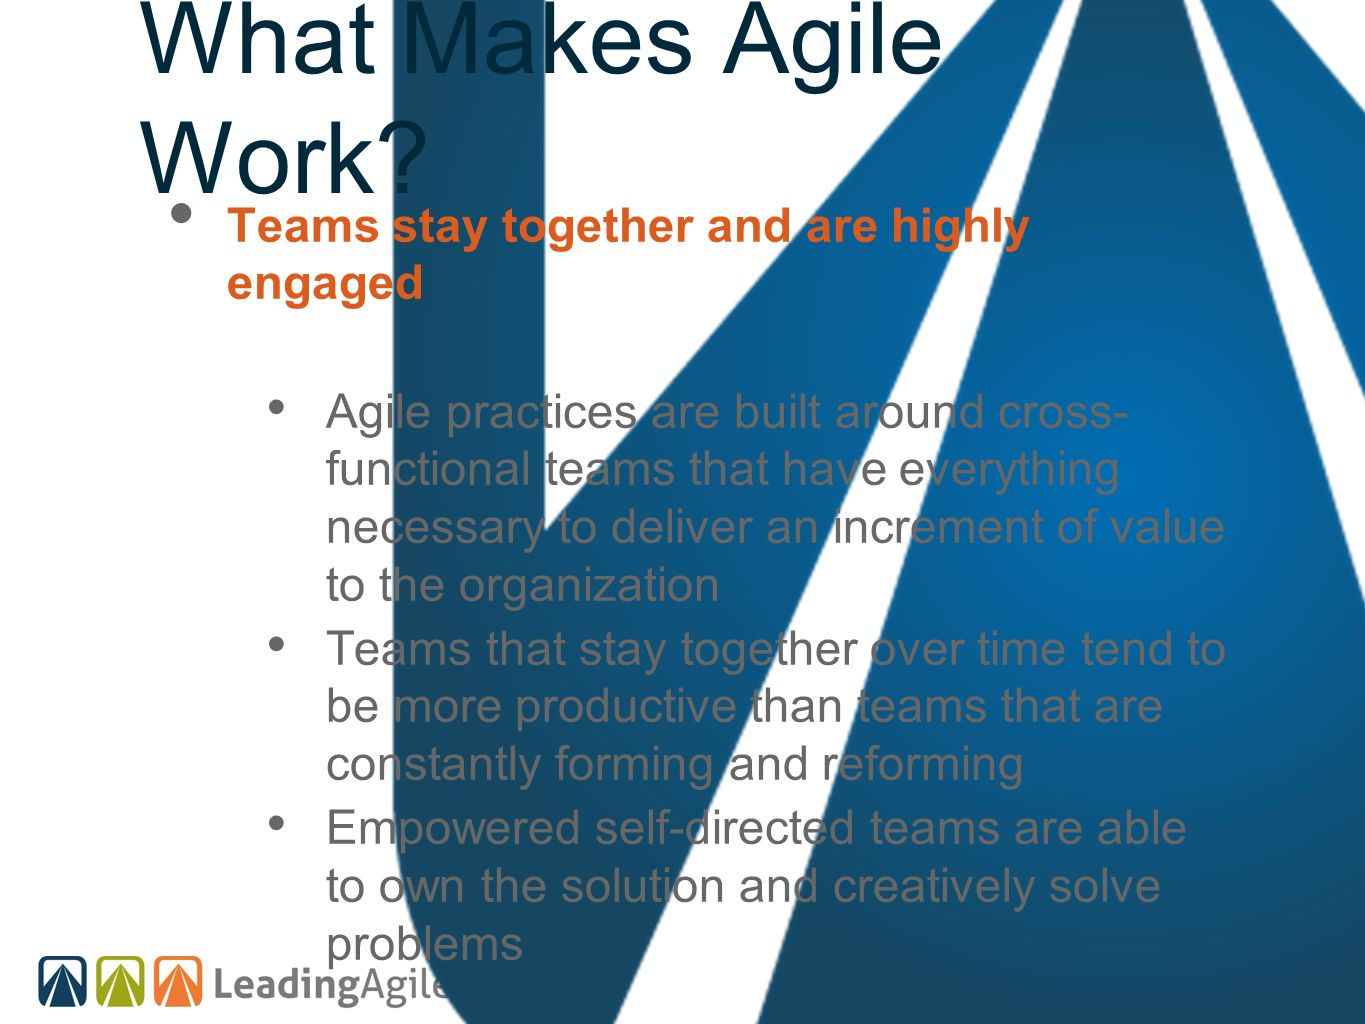 What Makes Agile Work Teams stay together and are highly engaged